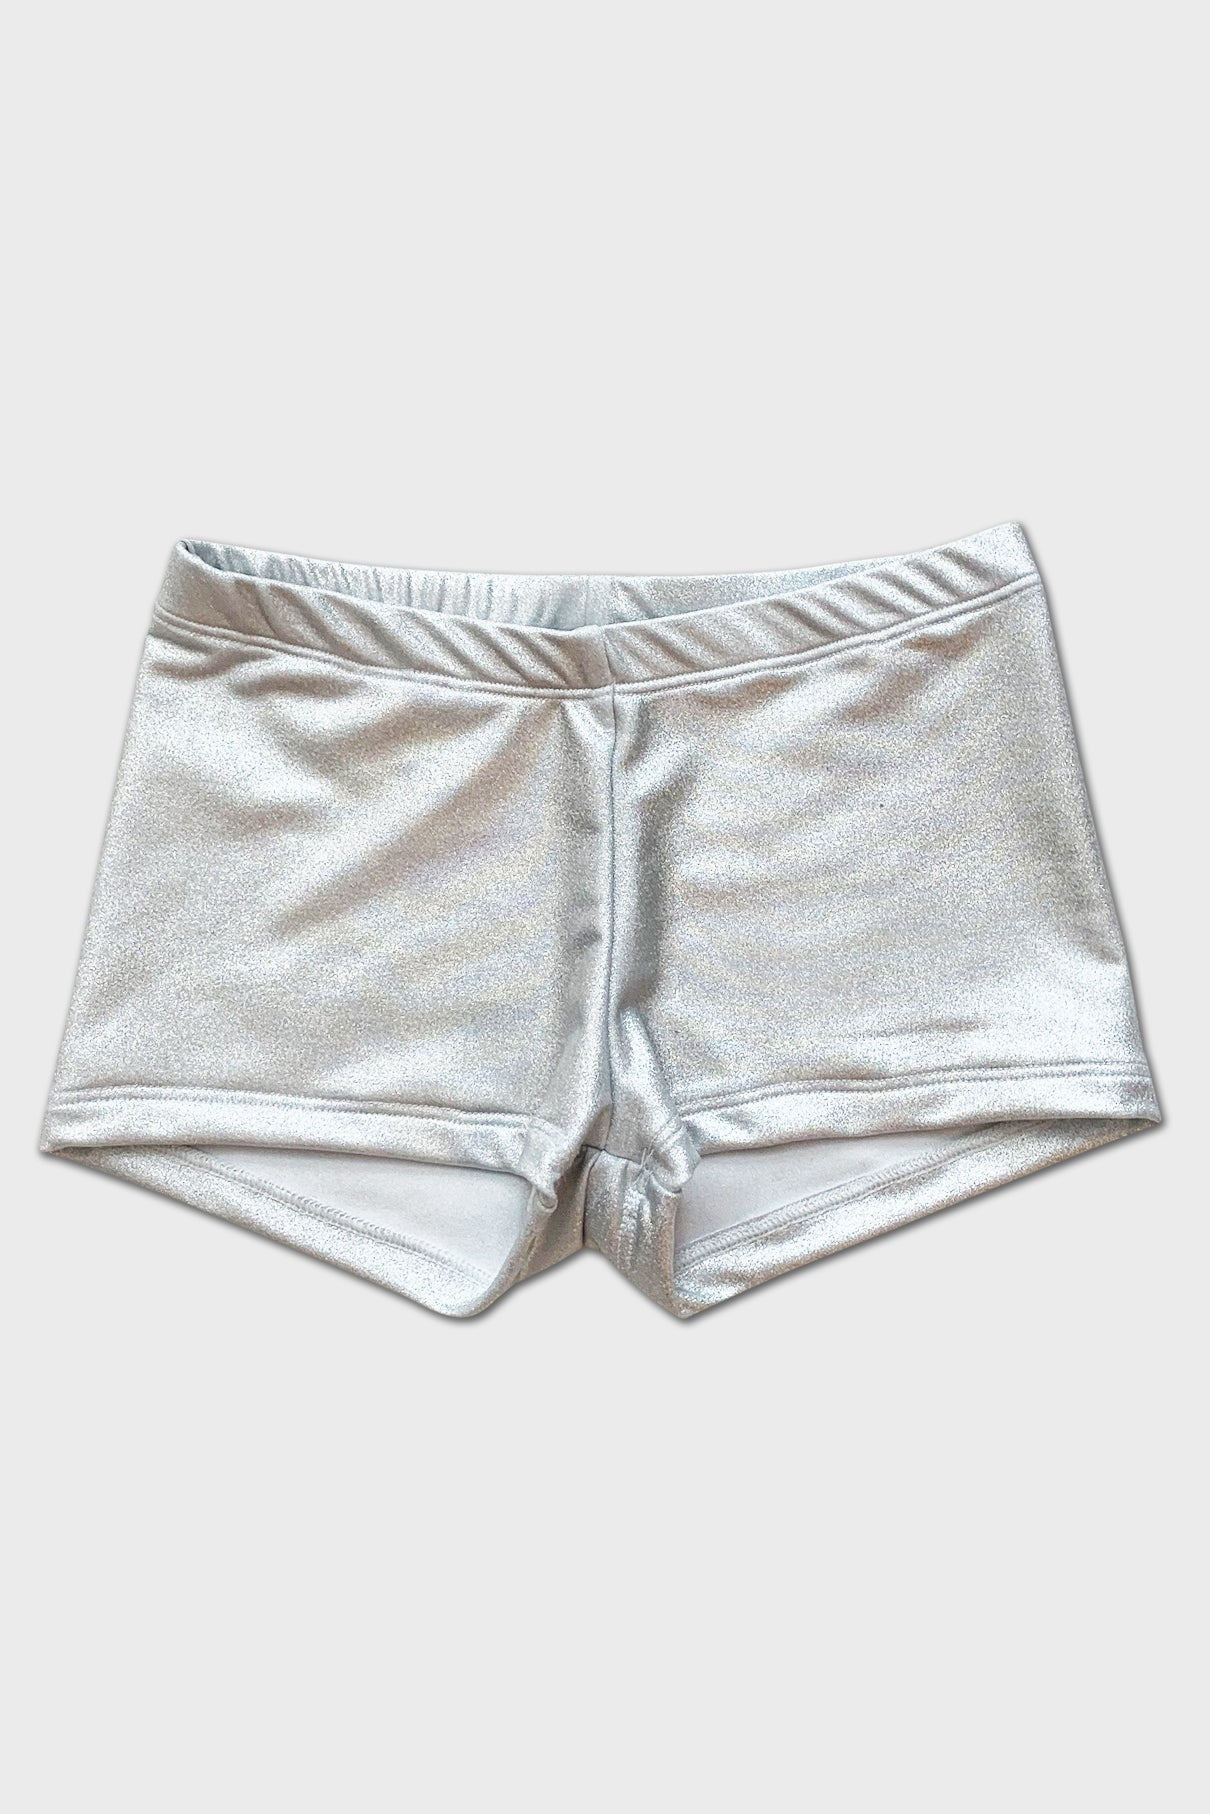 Metallic Shorts - Silver